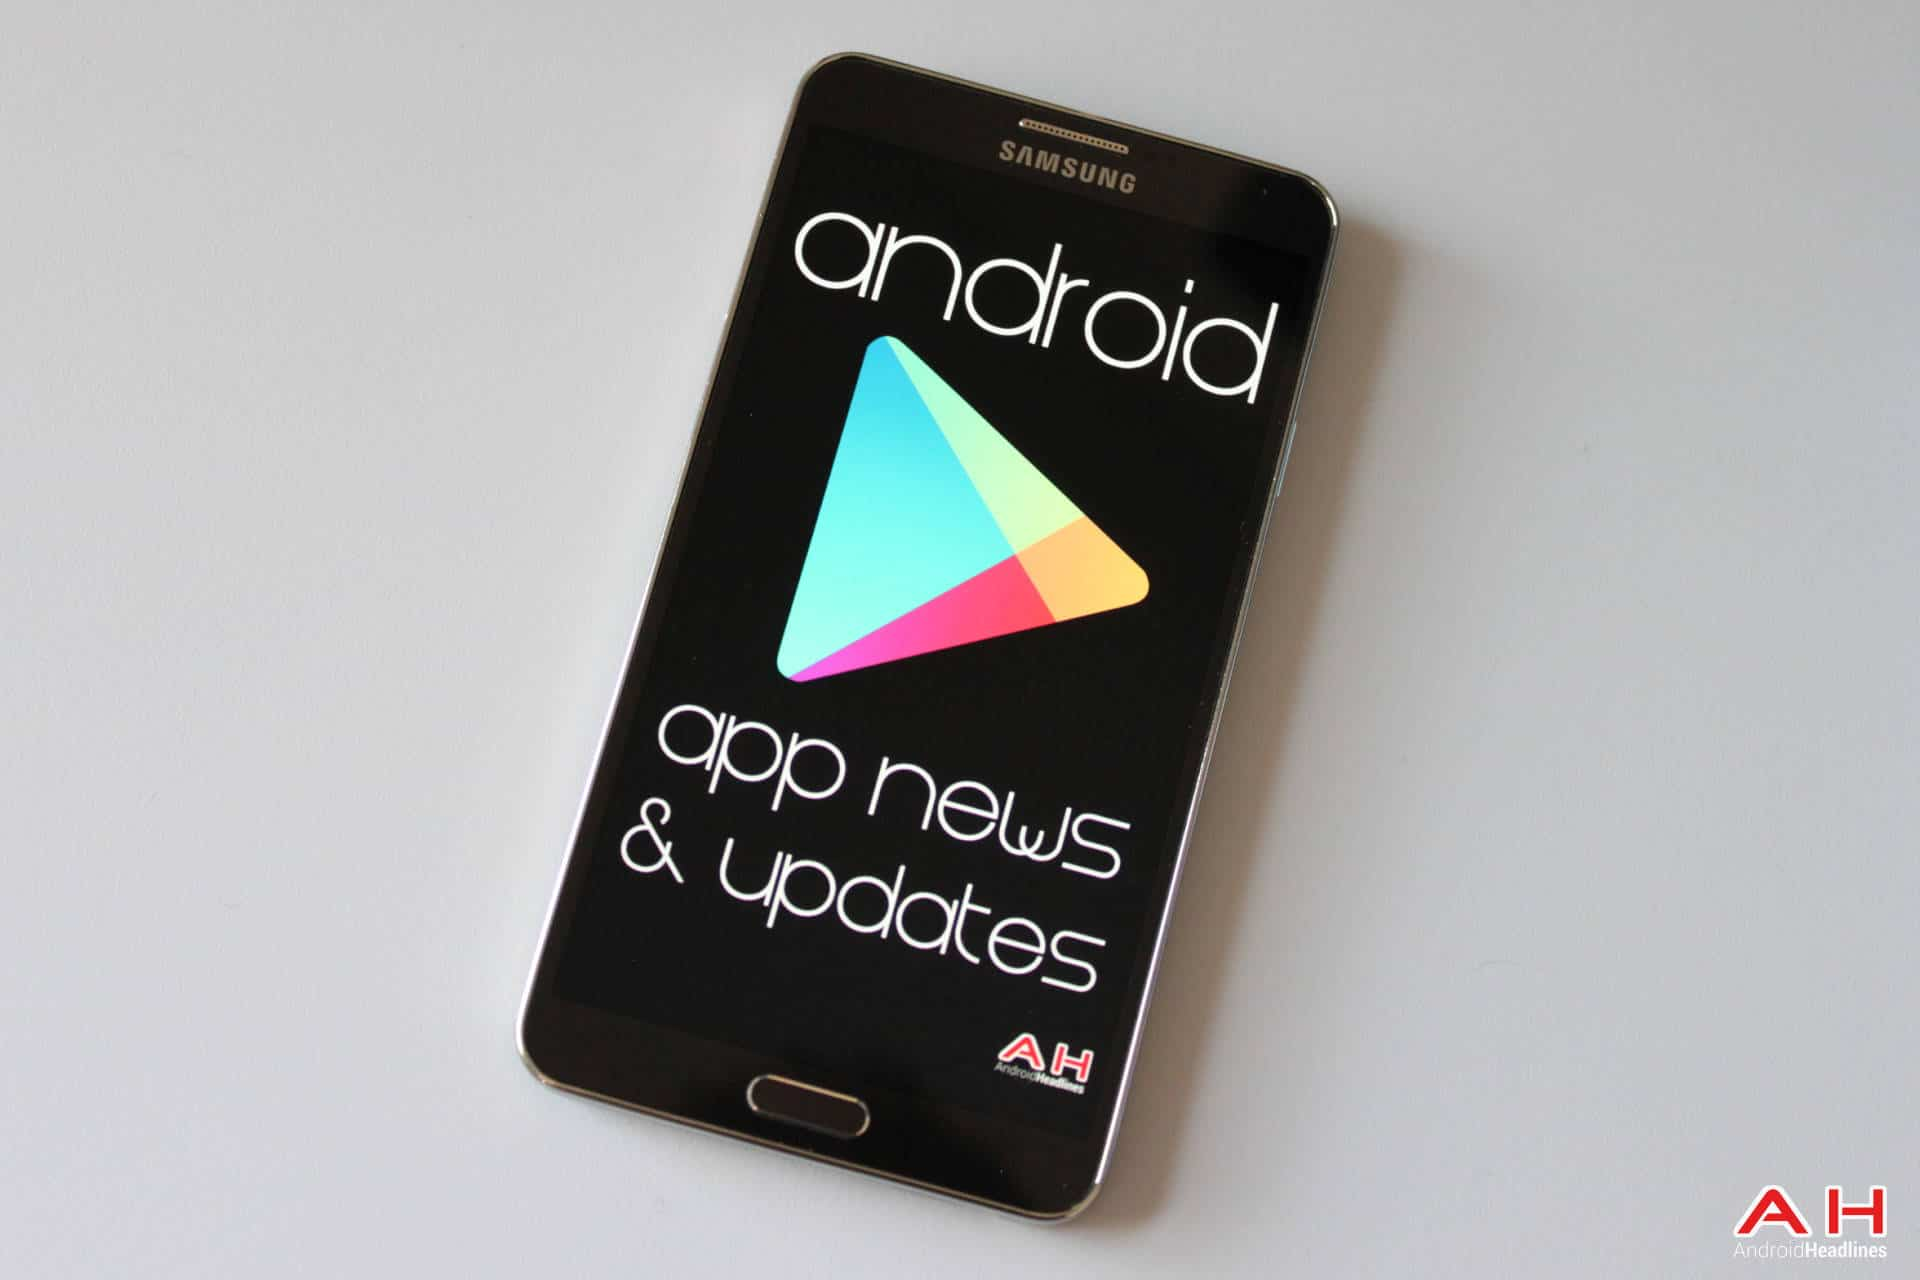 Android App Updates 10/31/14: Google Admin, Greyhound, Google+ and More